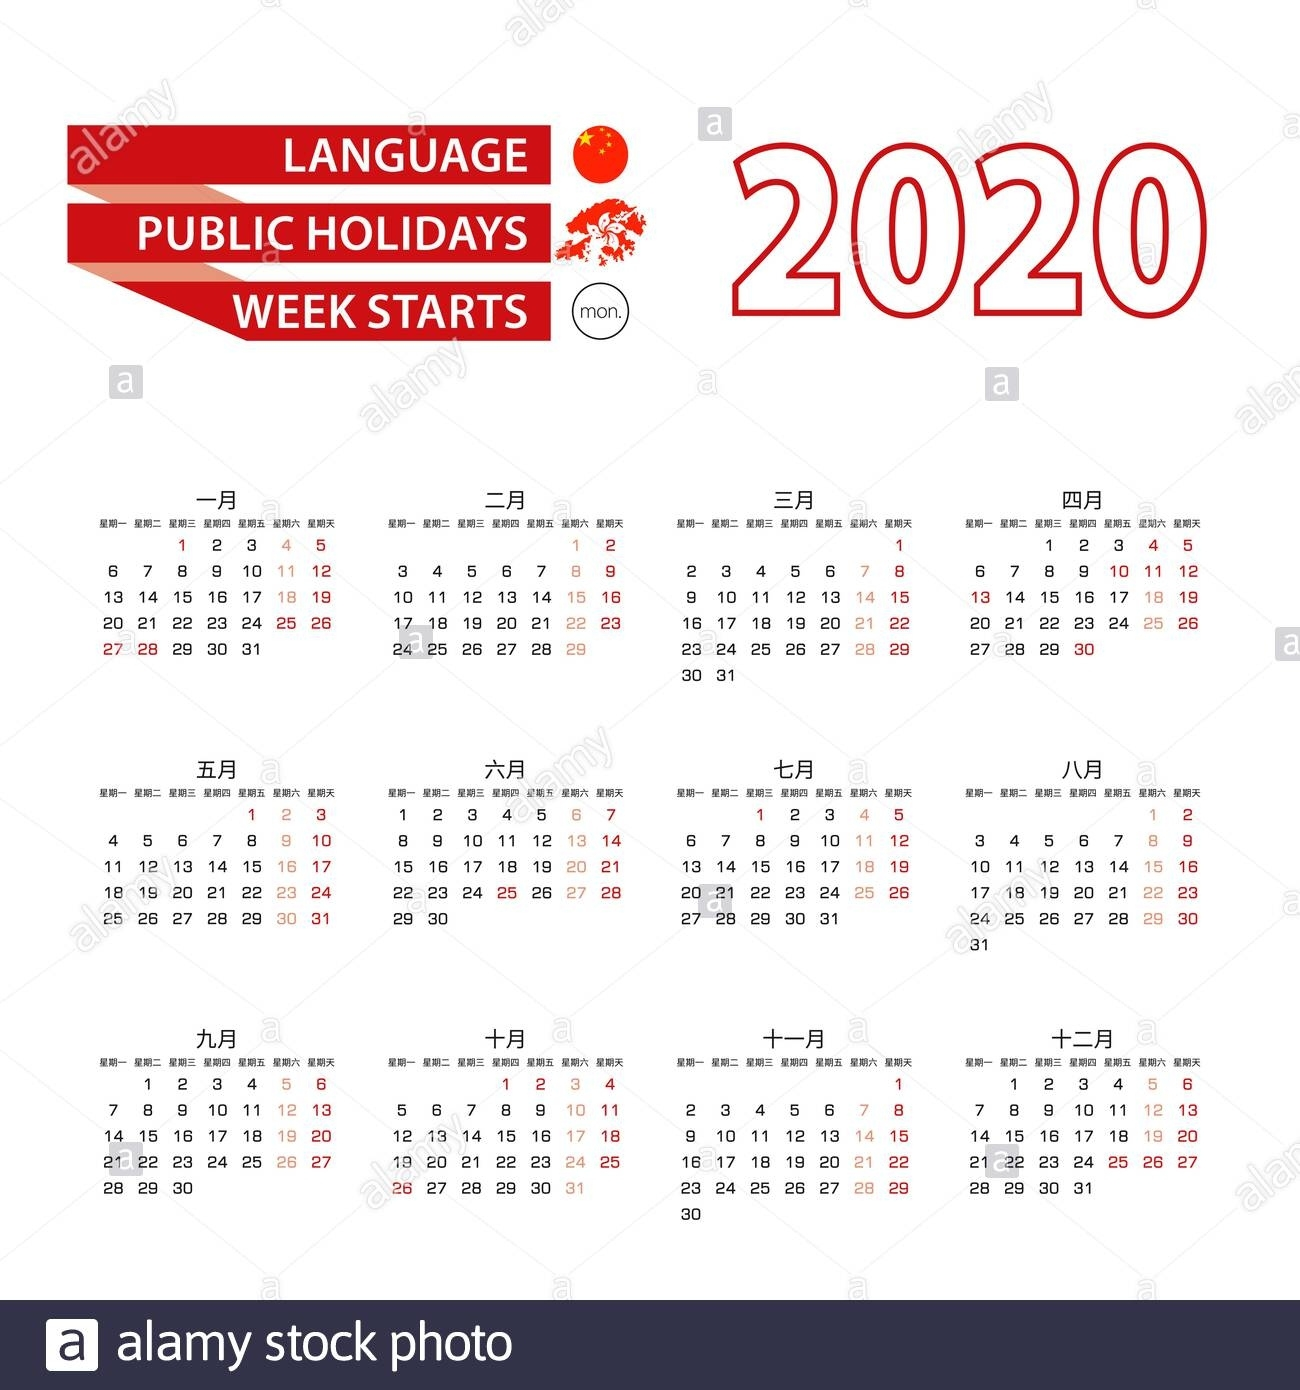 Calendar 2020 In Chinese Language With Public Holidays The 2021 Calendar Hk